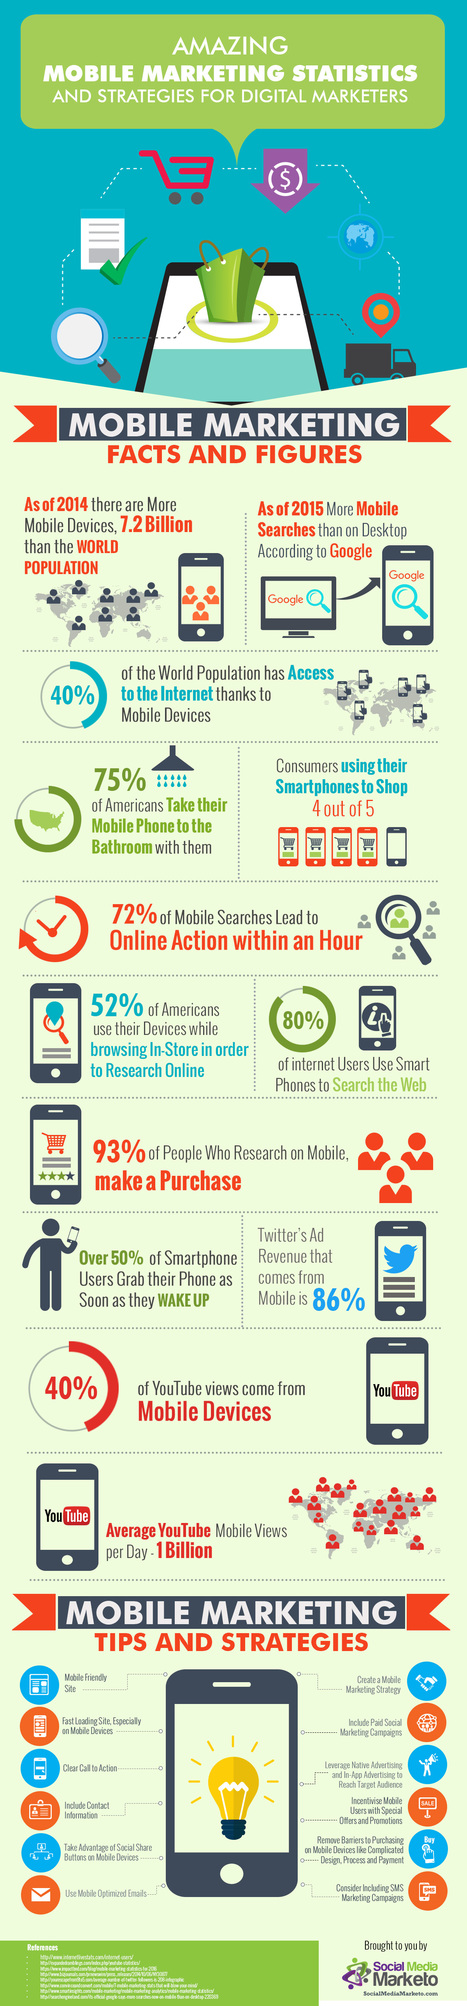 Amazing Mobile Marketing Strategy & Statistics for Digital Marketers #Infographic #mobilemarketing | MobileWeb | Scoop.it